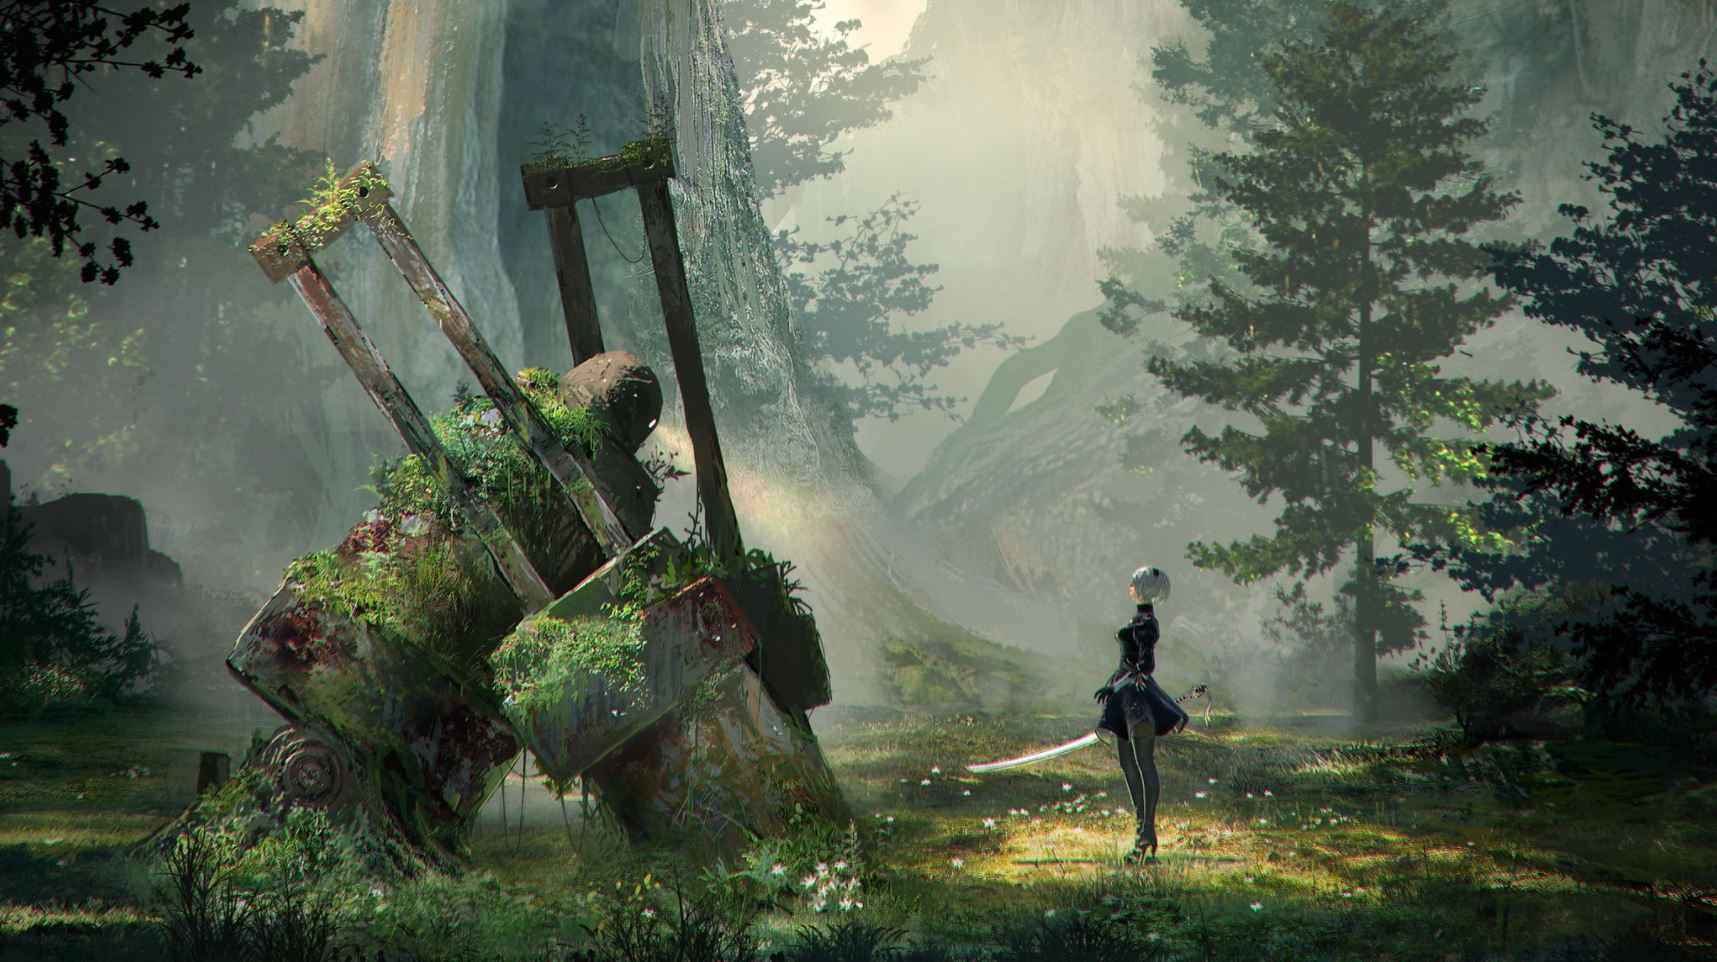 square-enix-are-staffing-up-for-nier-related-projects